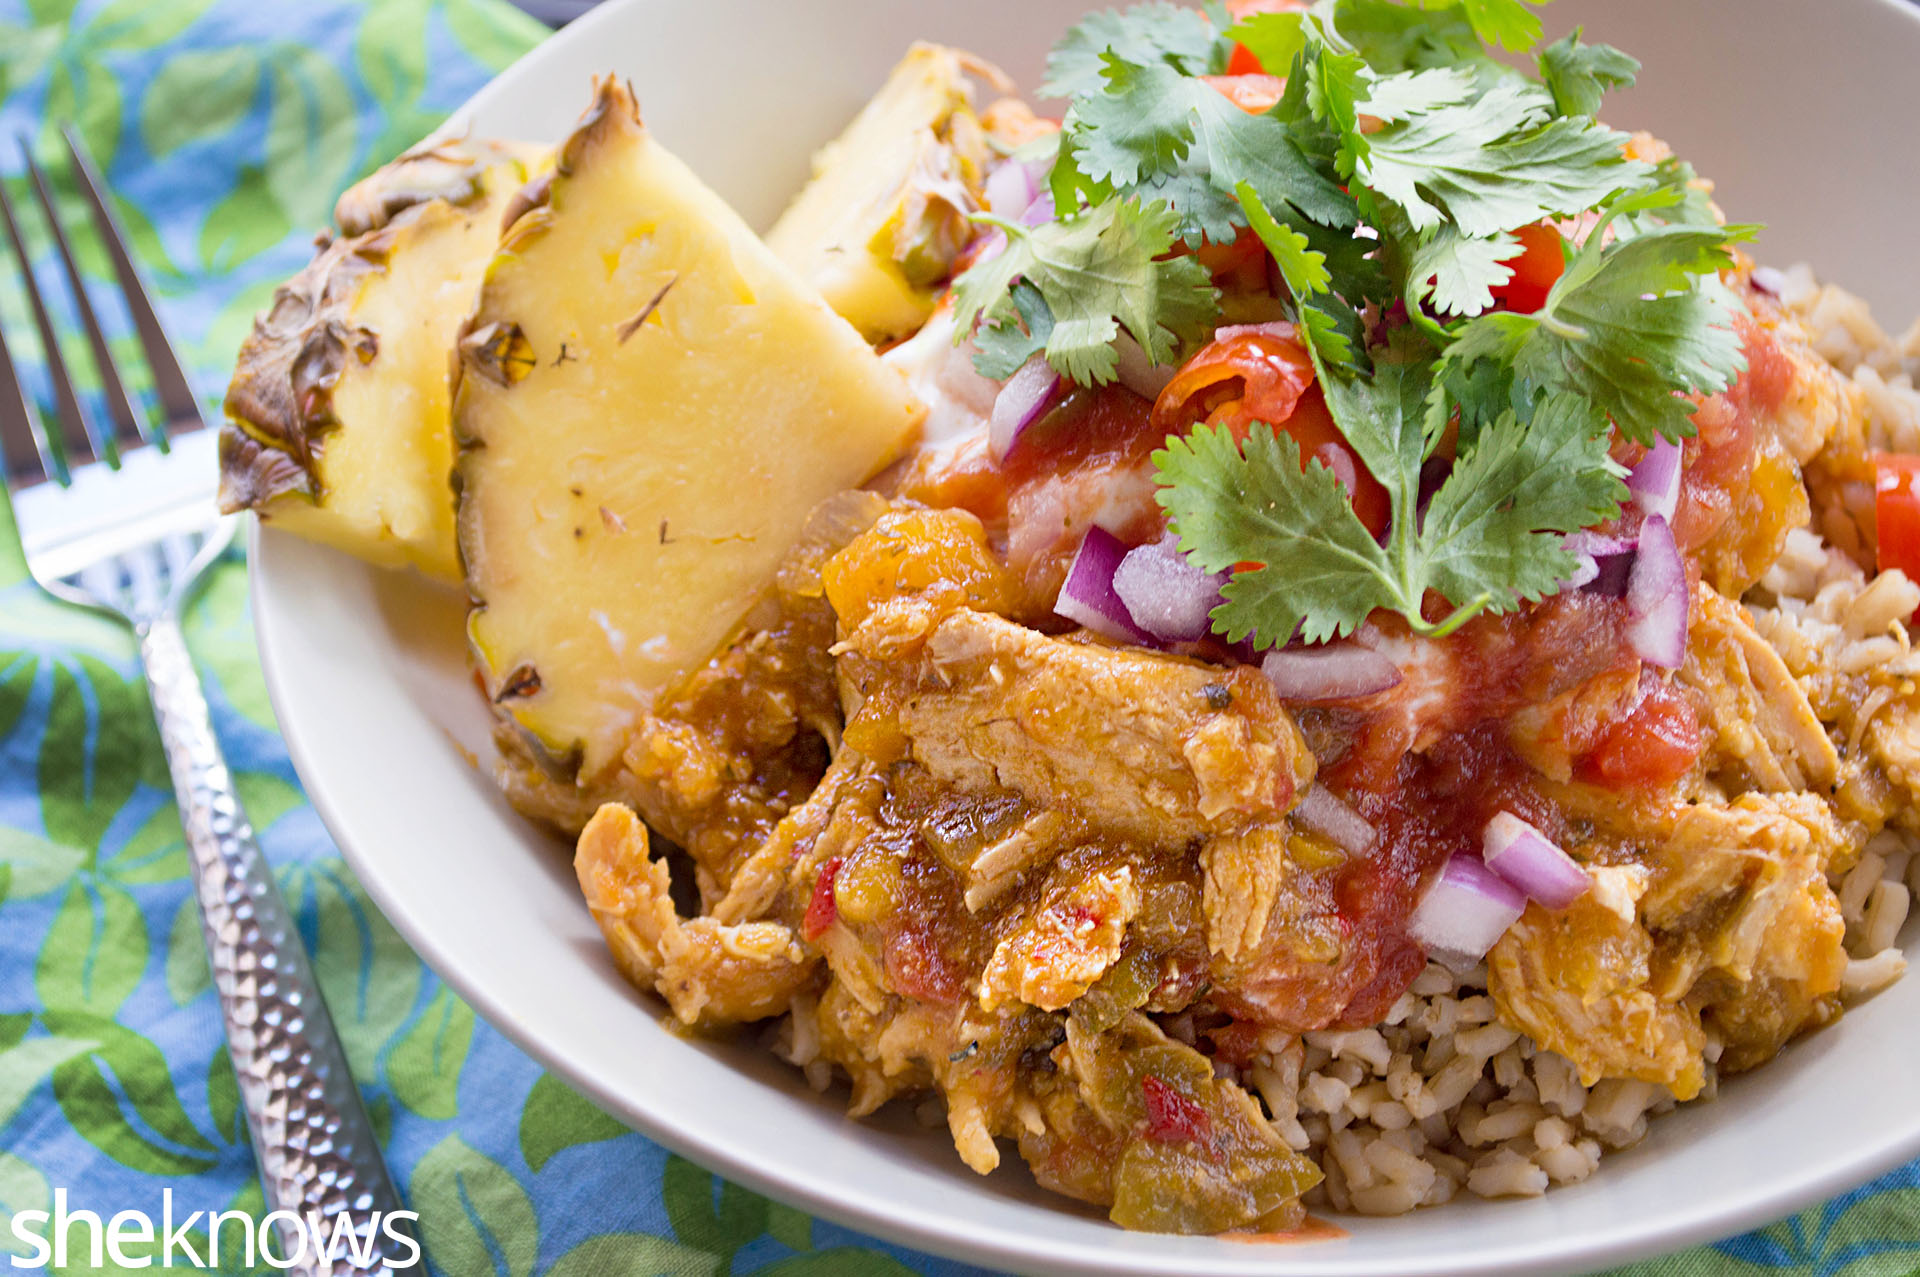 Tropical slow cooker chicken burrito bowls recipe